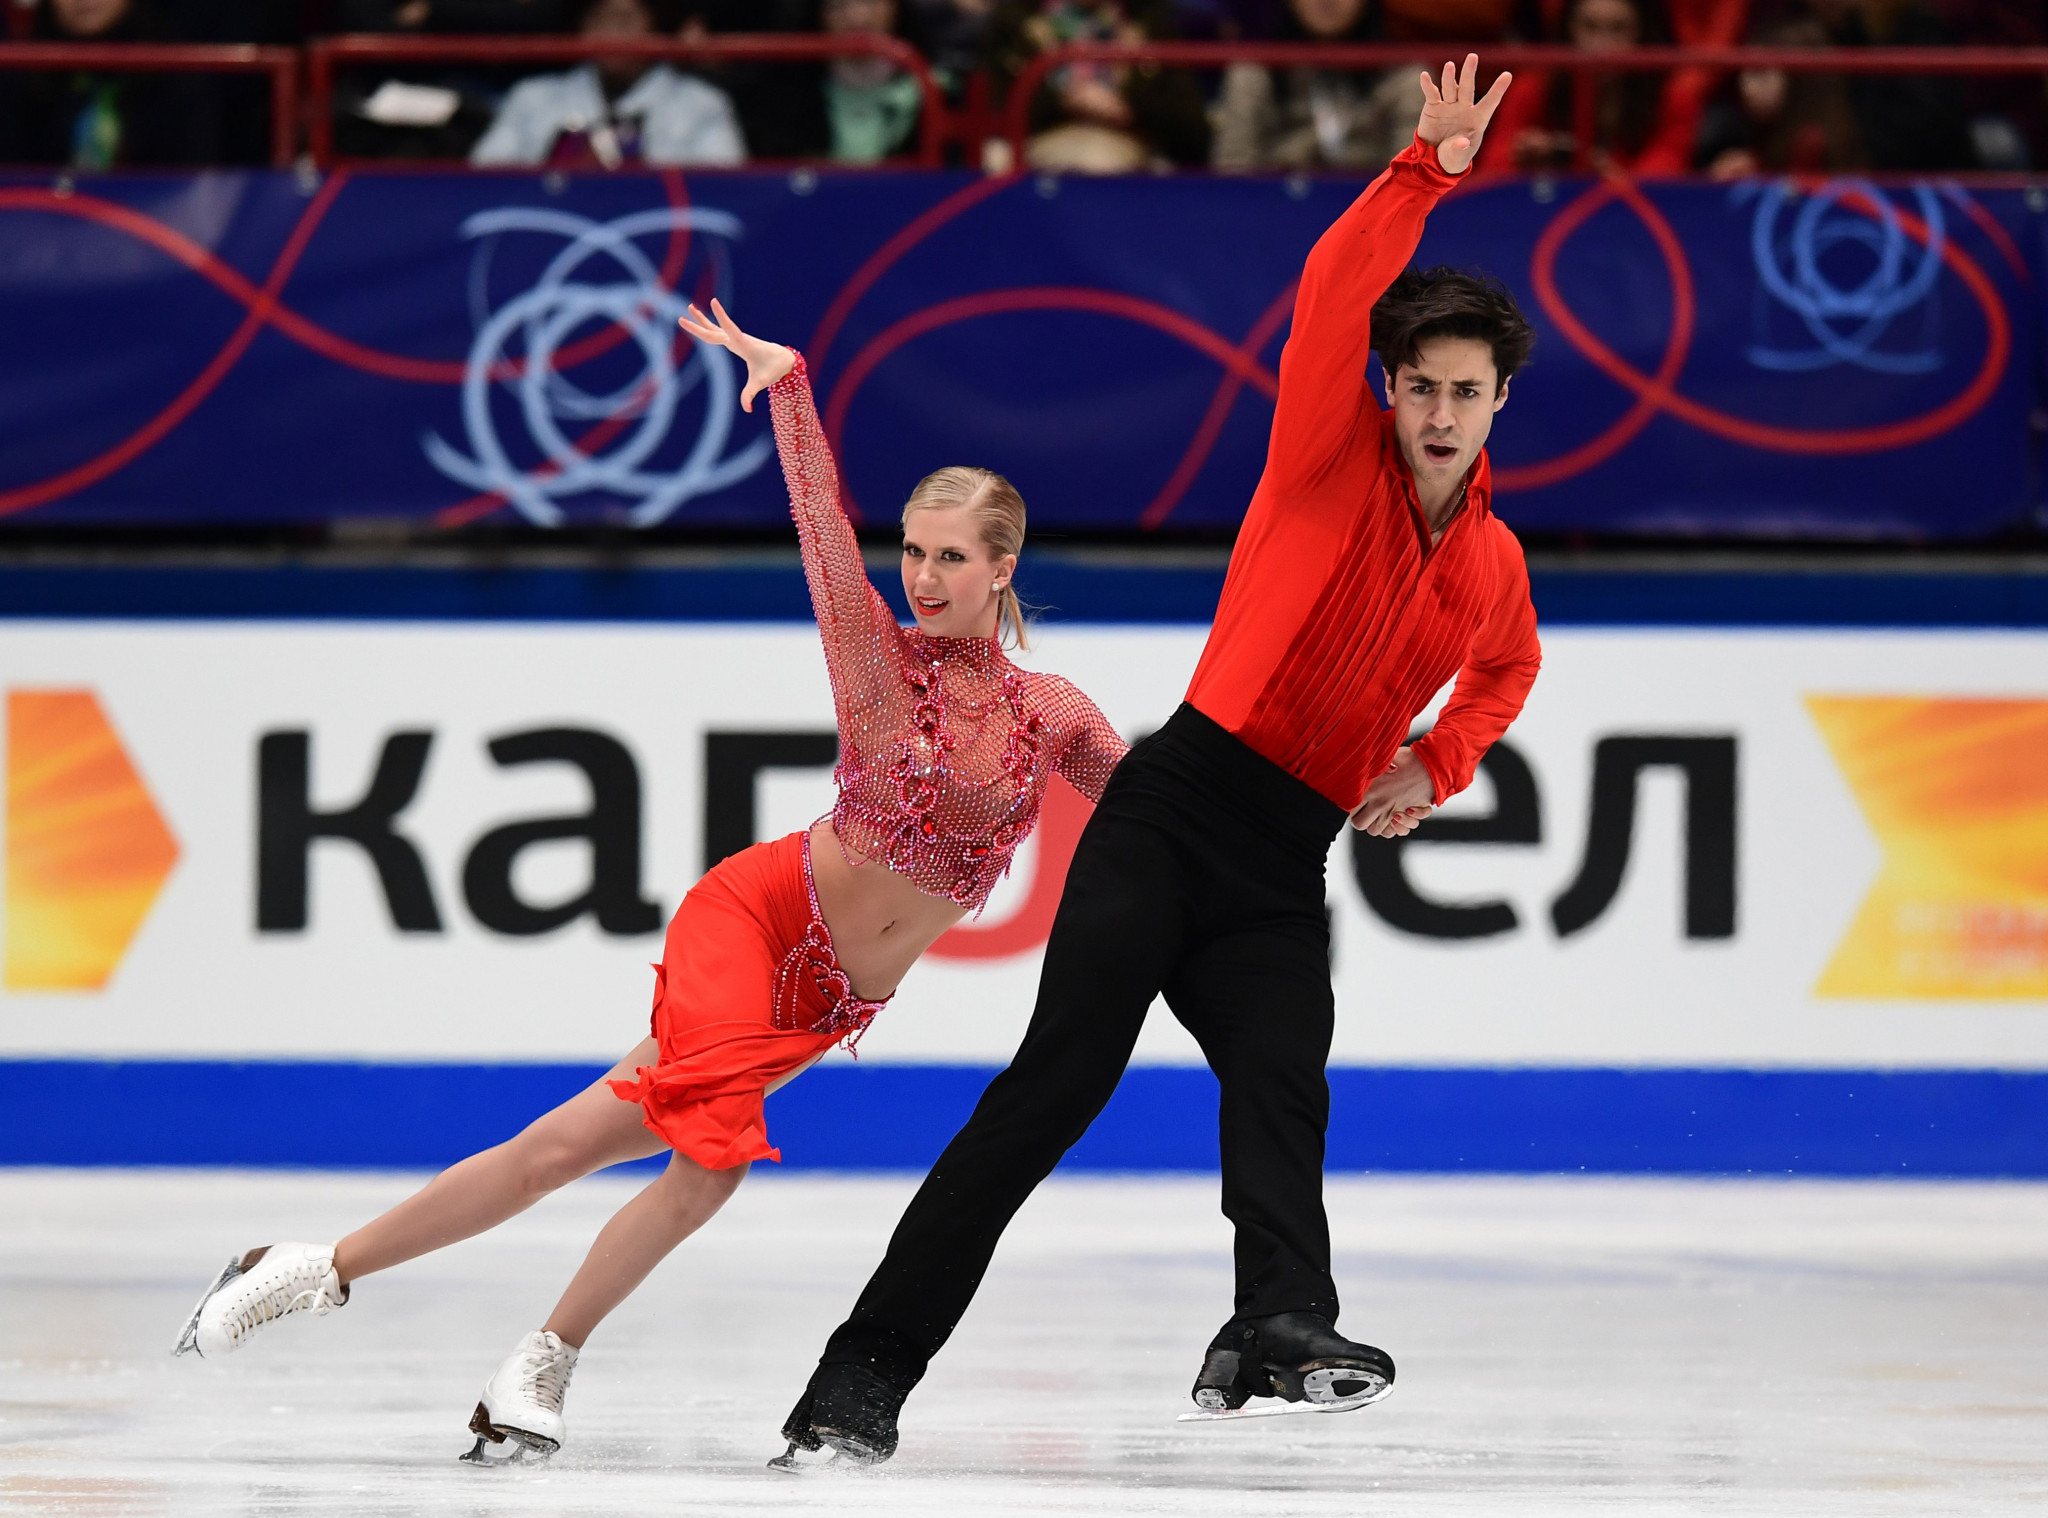 Andrew Poje and Kaitlyn Weaver won World Championship bronze in Milan in March ©Getty Images